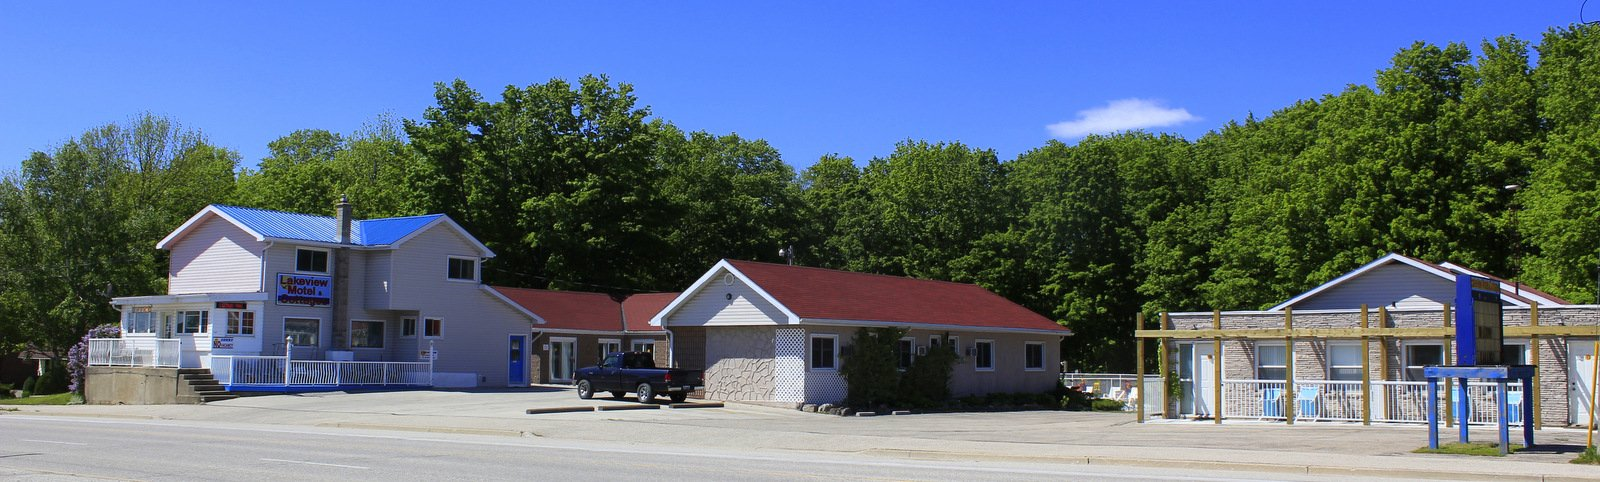 ‪Lakeview Motel & Cottages‬